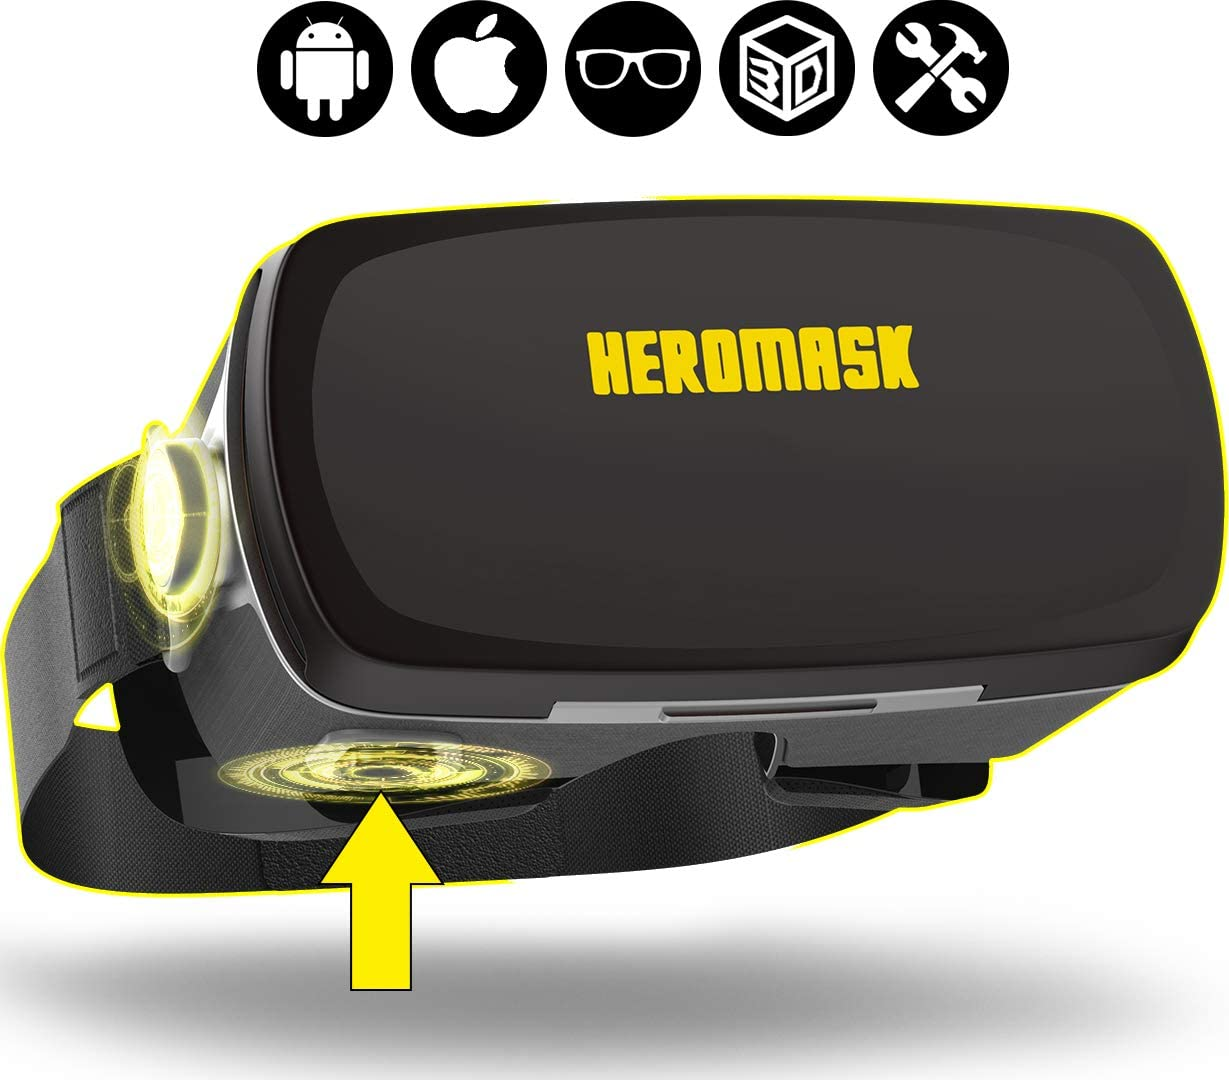 VR Headset - Virtual Reality gaming - 3D glasses - Compatible with iPhone 11 PRO XR... Samsung galaxy s10 plus, Xiaomi mi 9... Apple & Android phone- Professional VR goggles with button - Heromask PRO